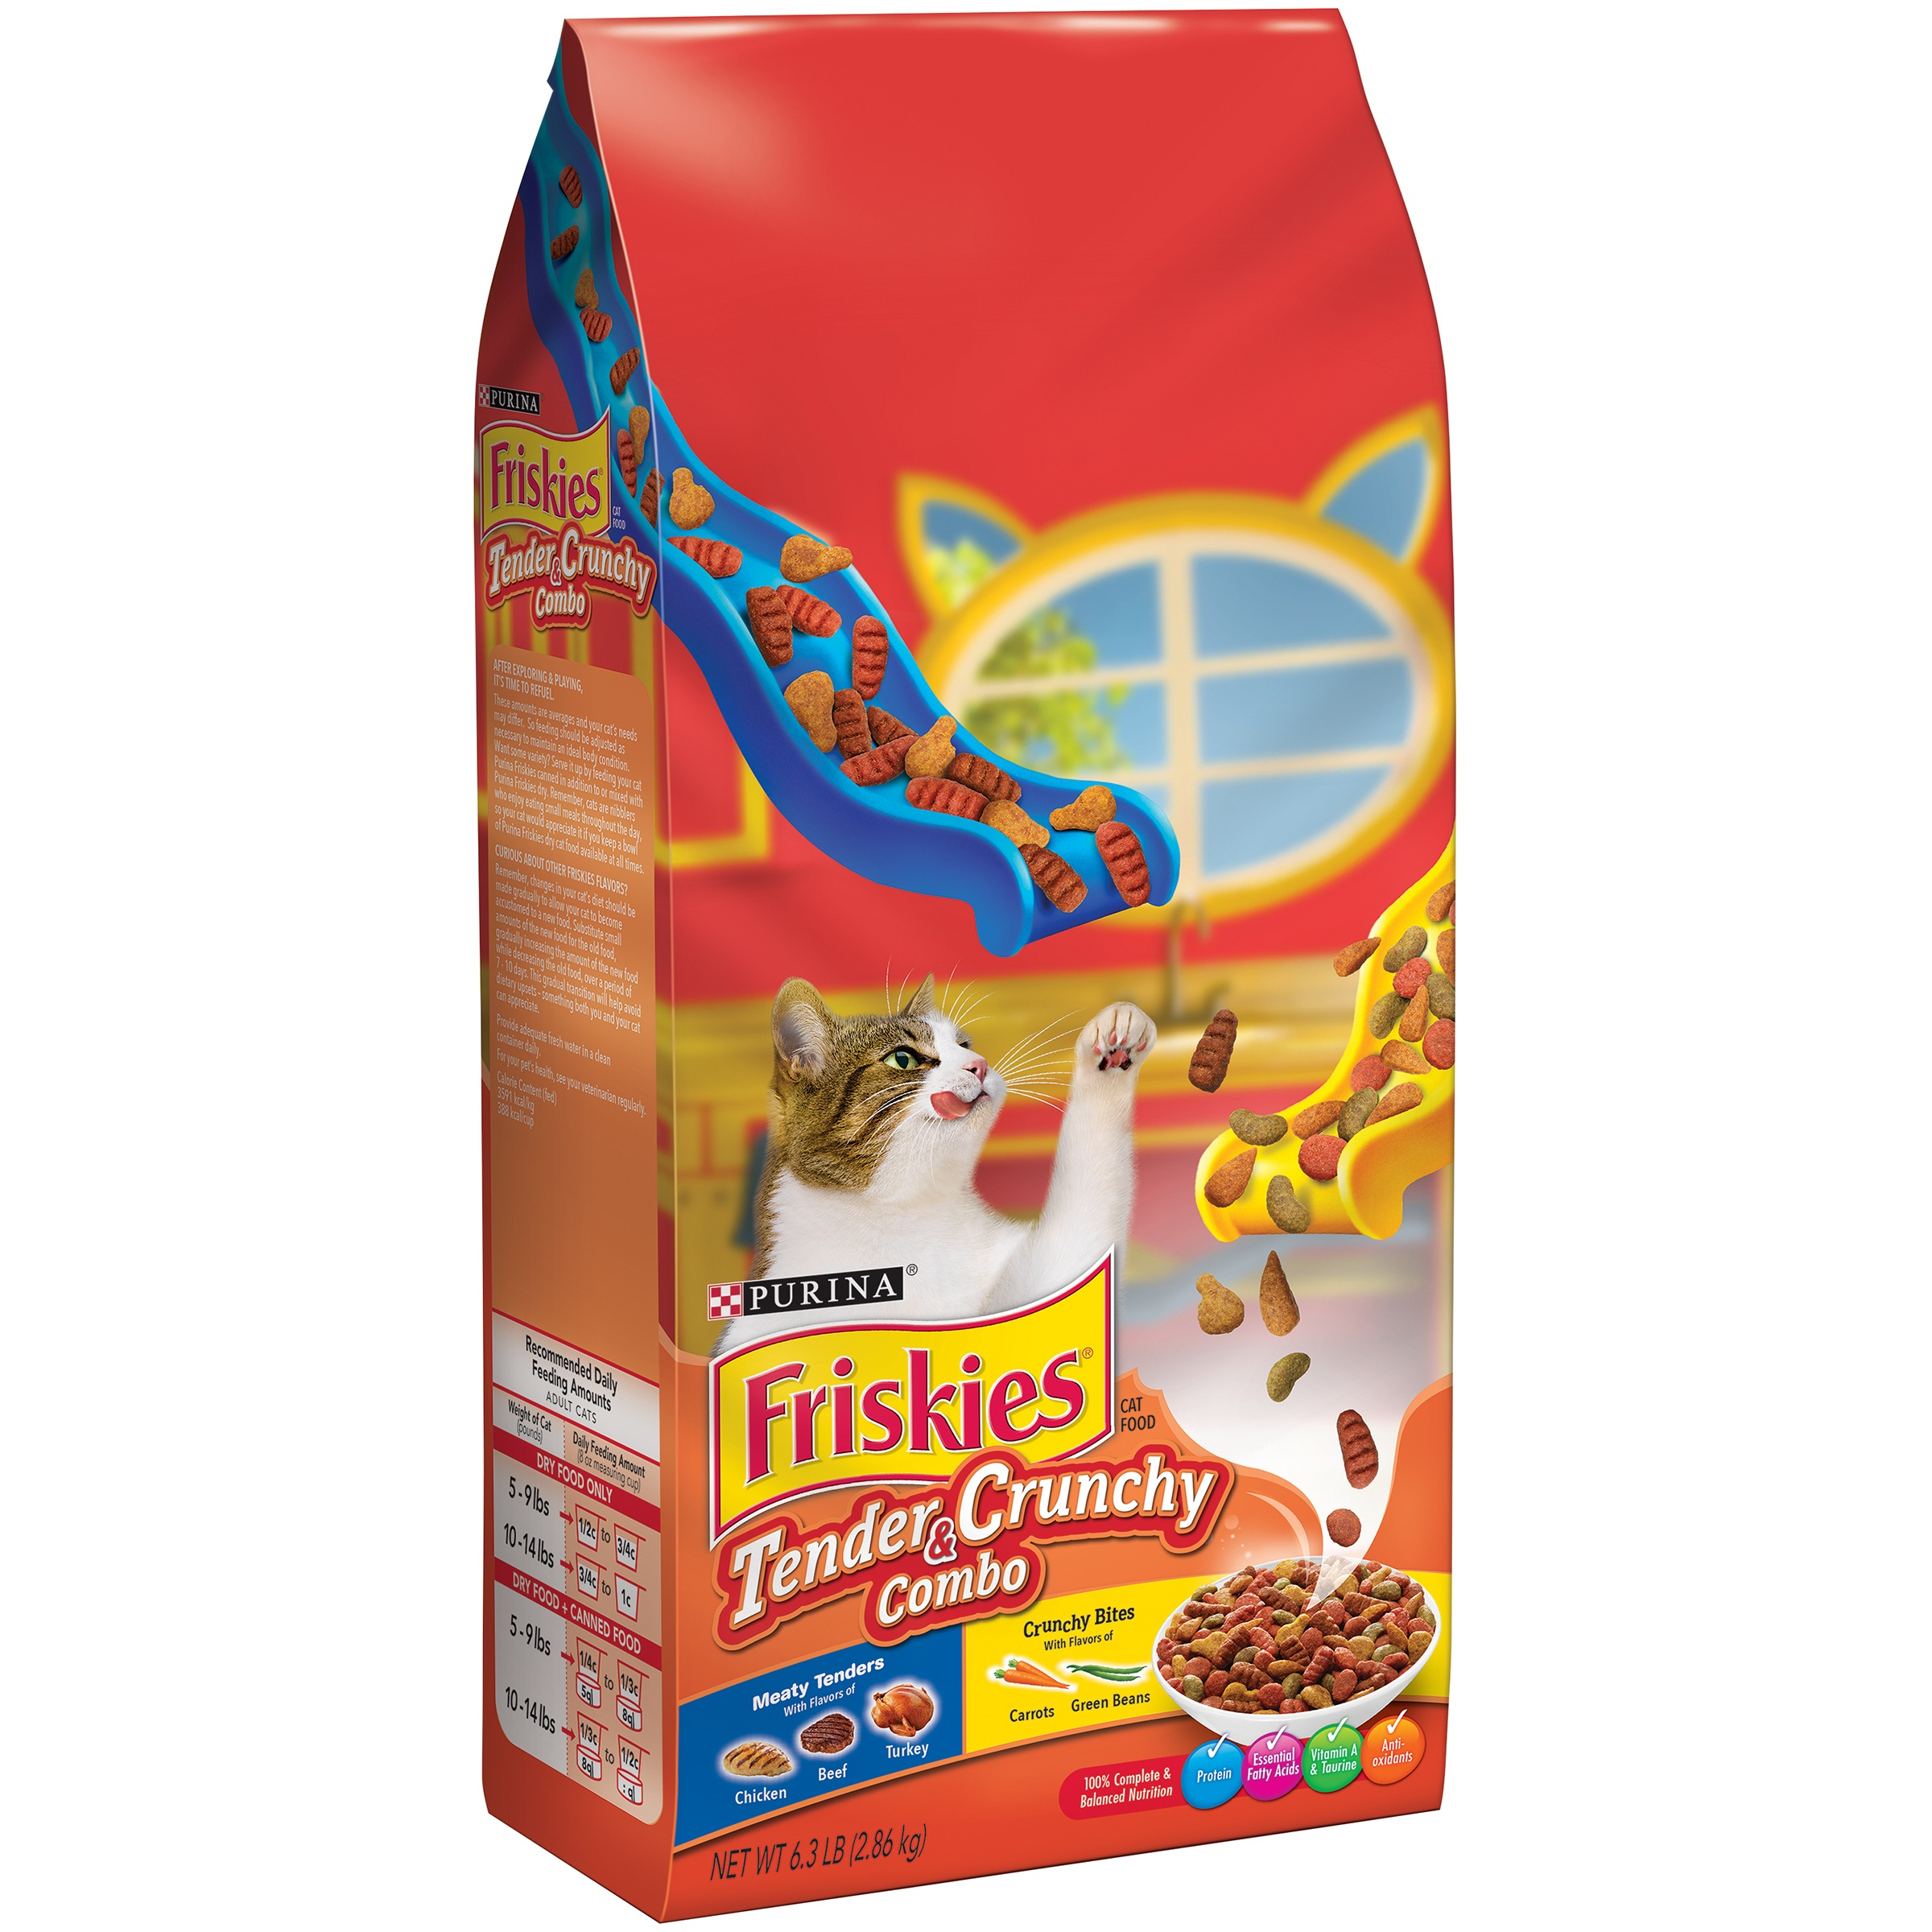 Purina Friskies Tender & Crunchy Combo Dry Cat Food, 6.3 lb